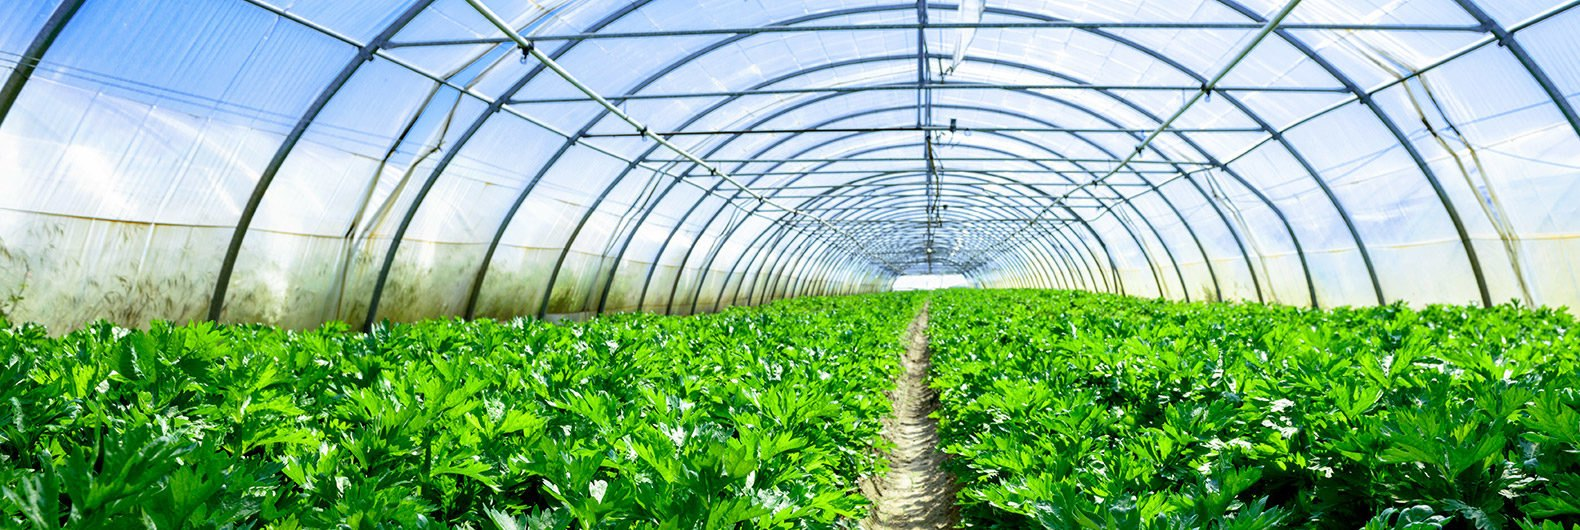 Ontario Greenhouses Could Lose $10M Because Of New Cap And Trade Rules